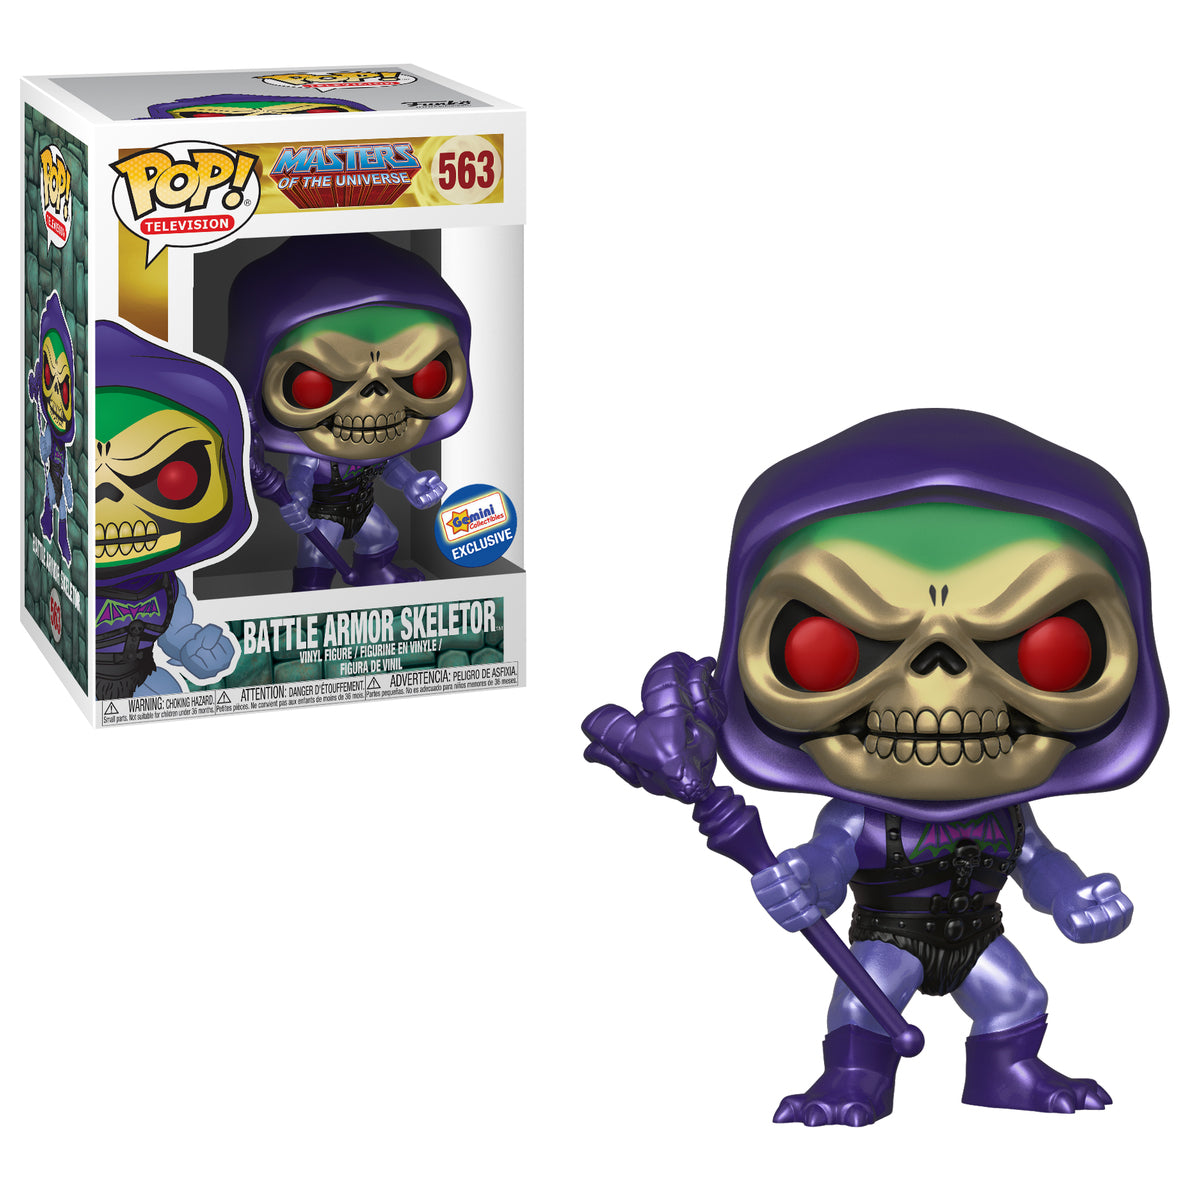 Masters of the Universe Metallic Skeletor with Battle Armor Exclusive